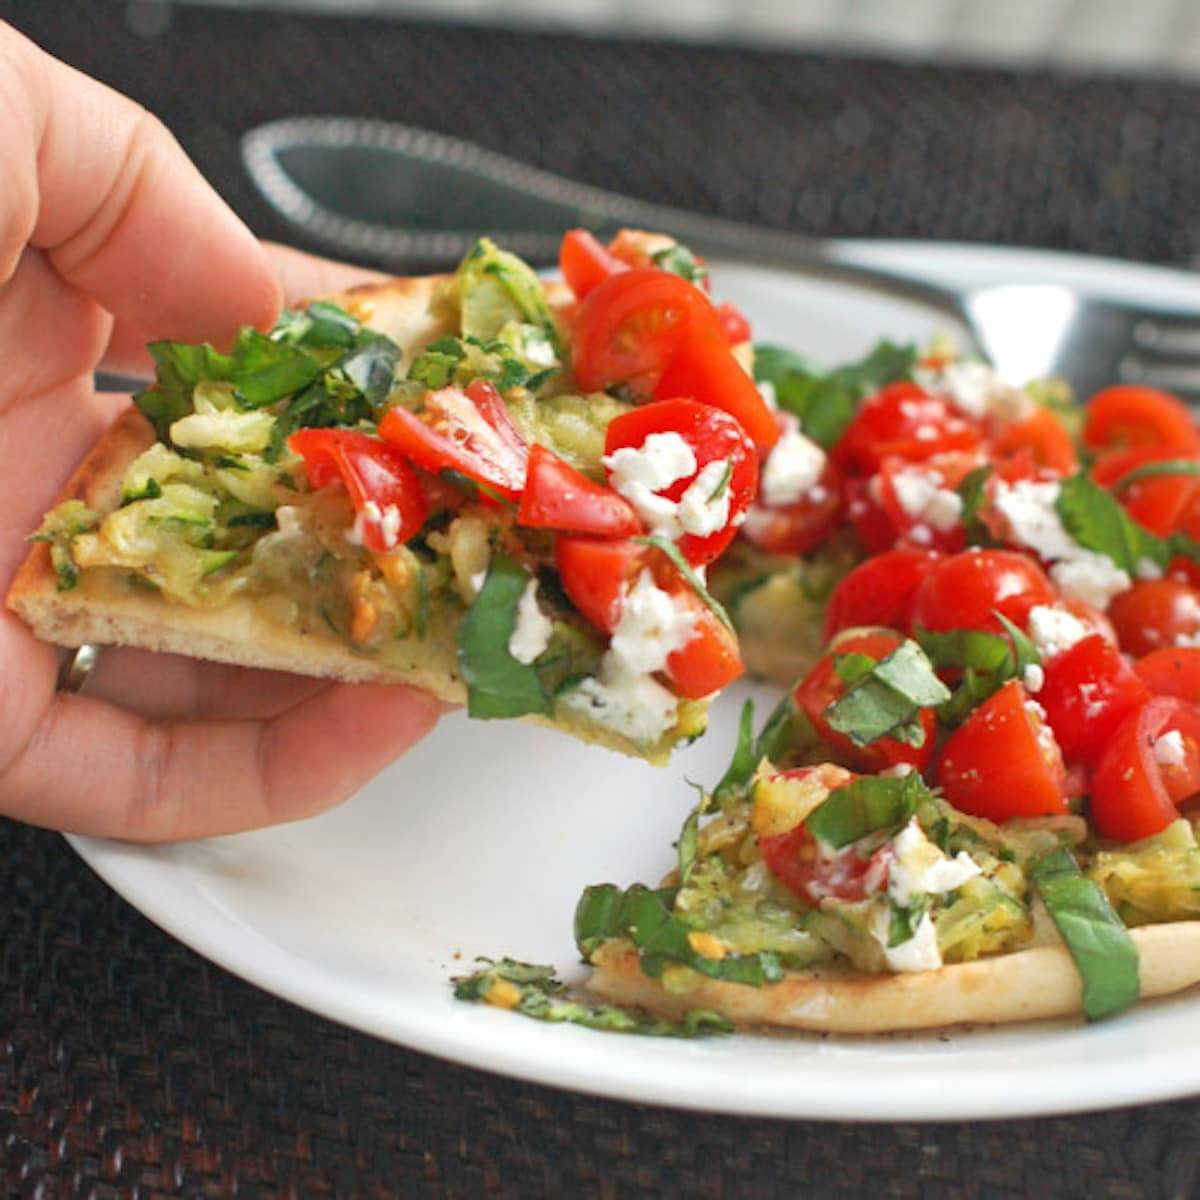 Flatbread pizza with zucchini, cherry tomatoes, and basil.